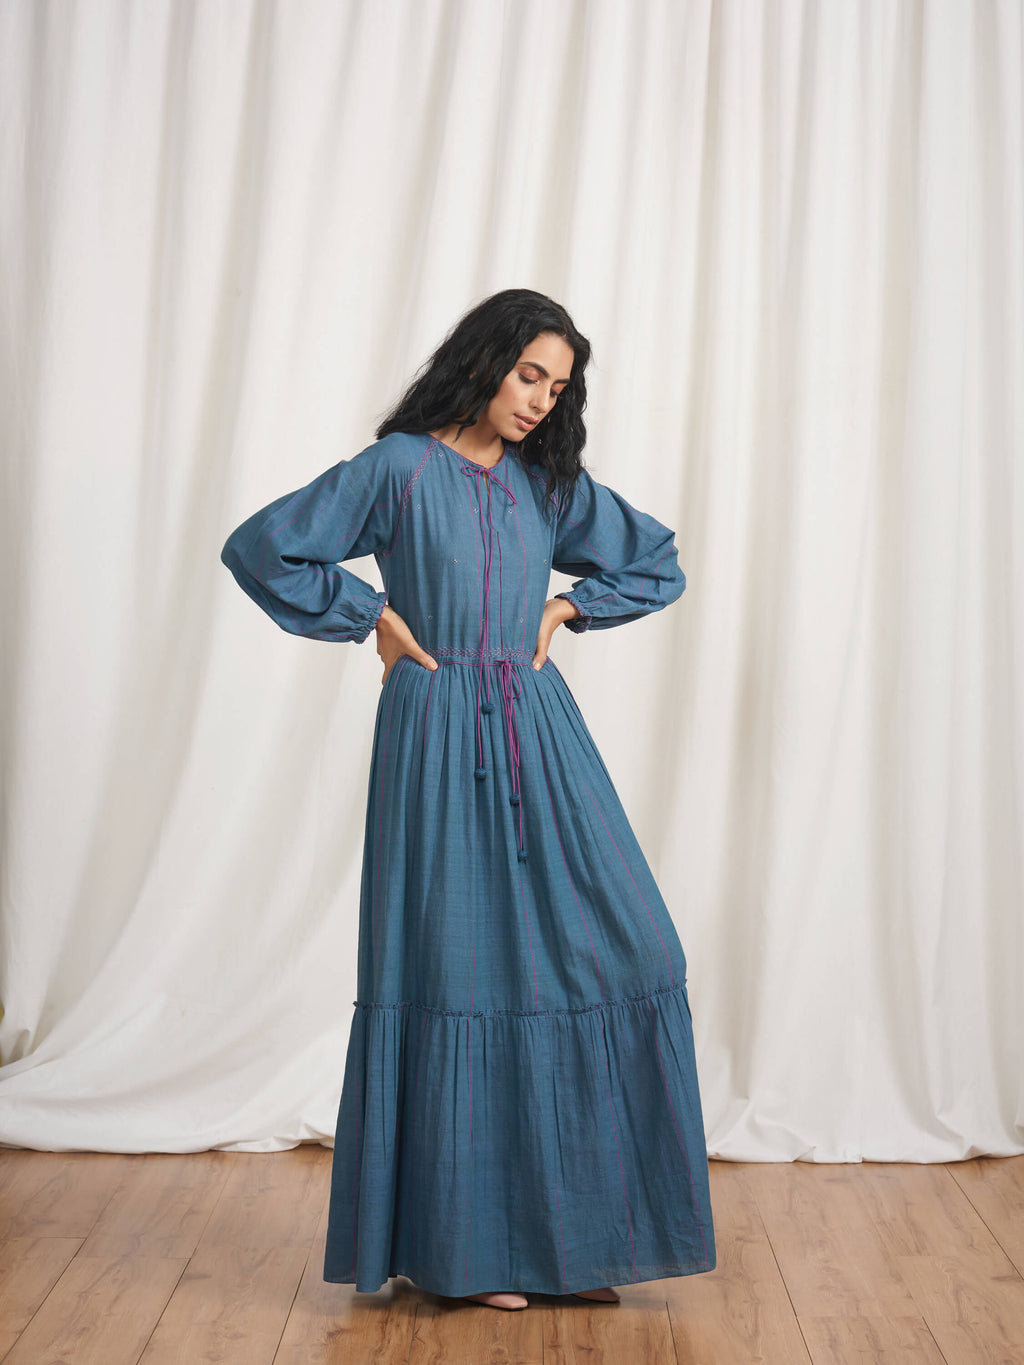 Cerulean Dreams Maxi Dress - BunaStudio